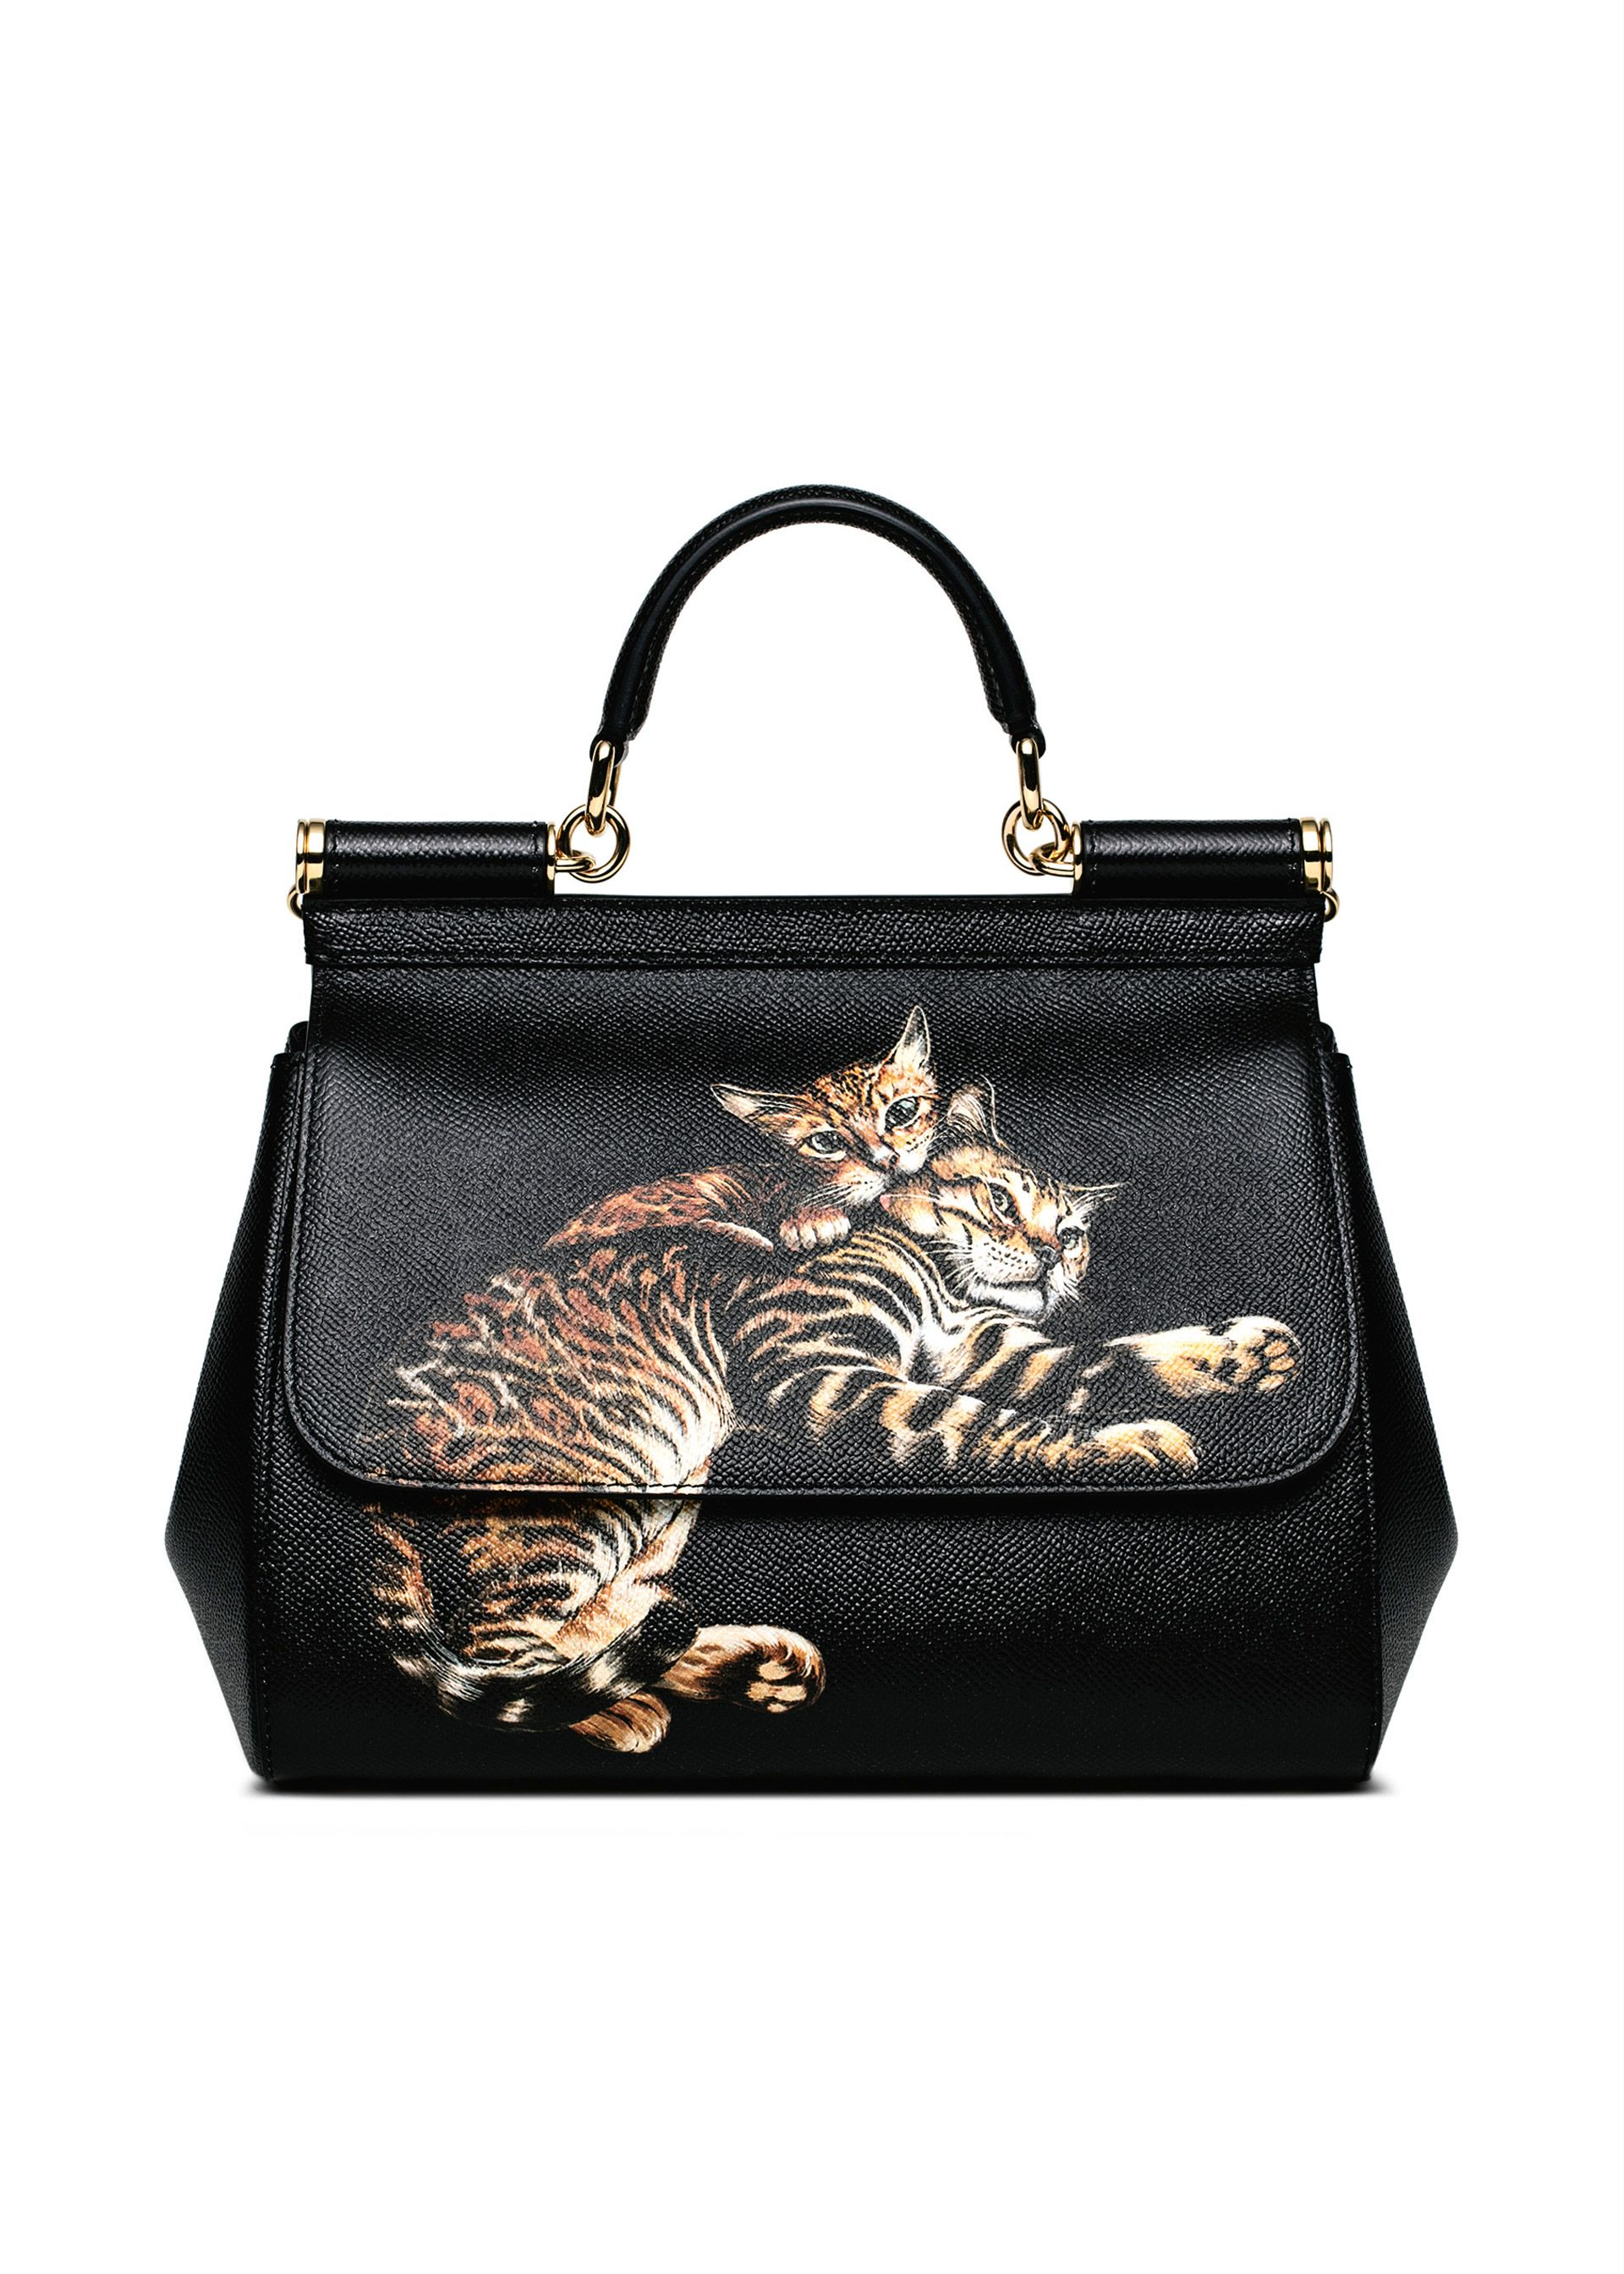 The Dolceamp; Wonderland For Women's Collection Discover Gabbana New QdeEoWCxrB